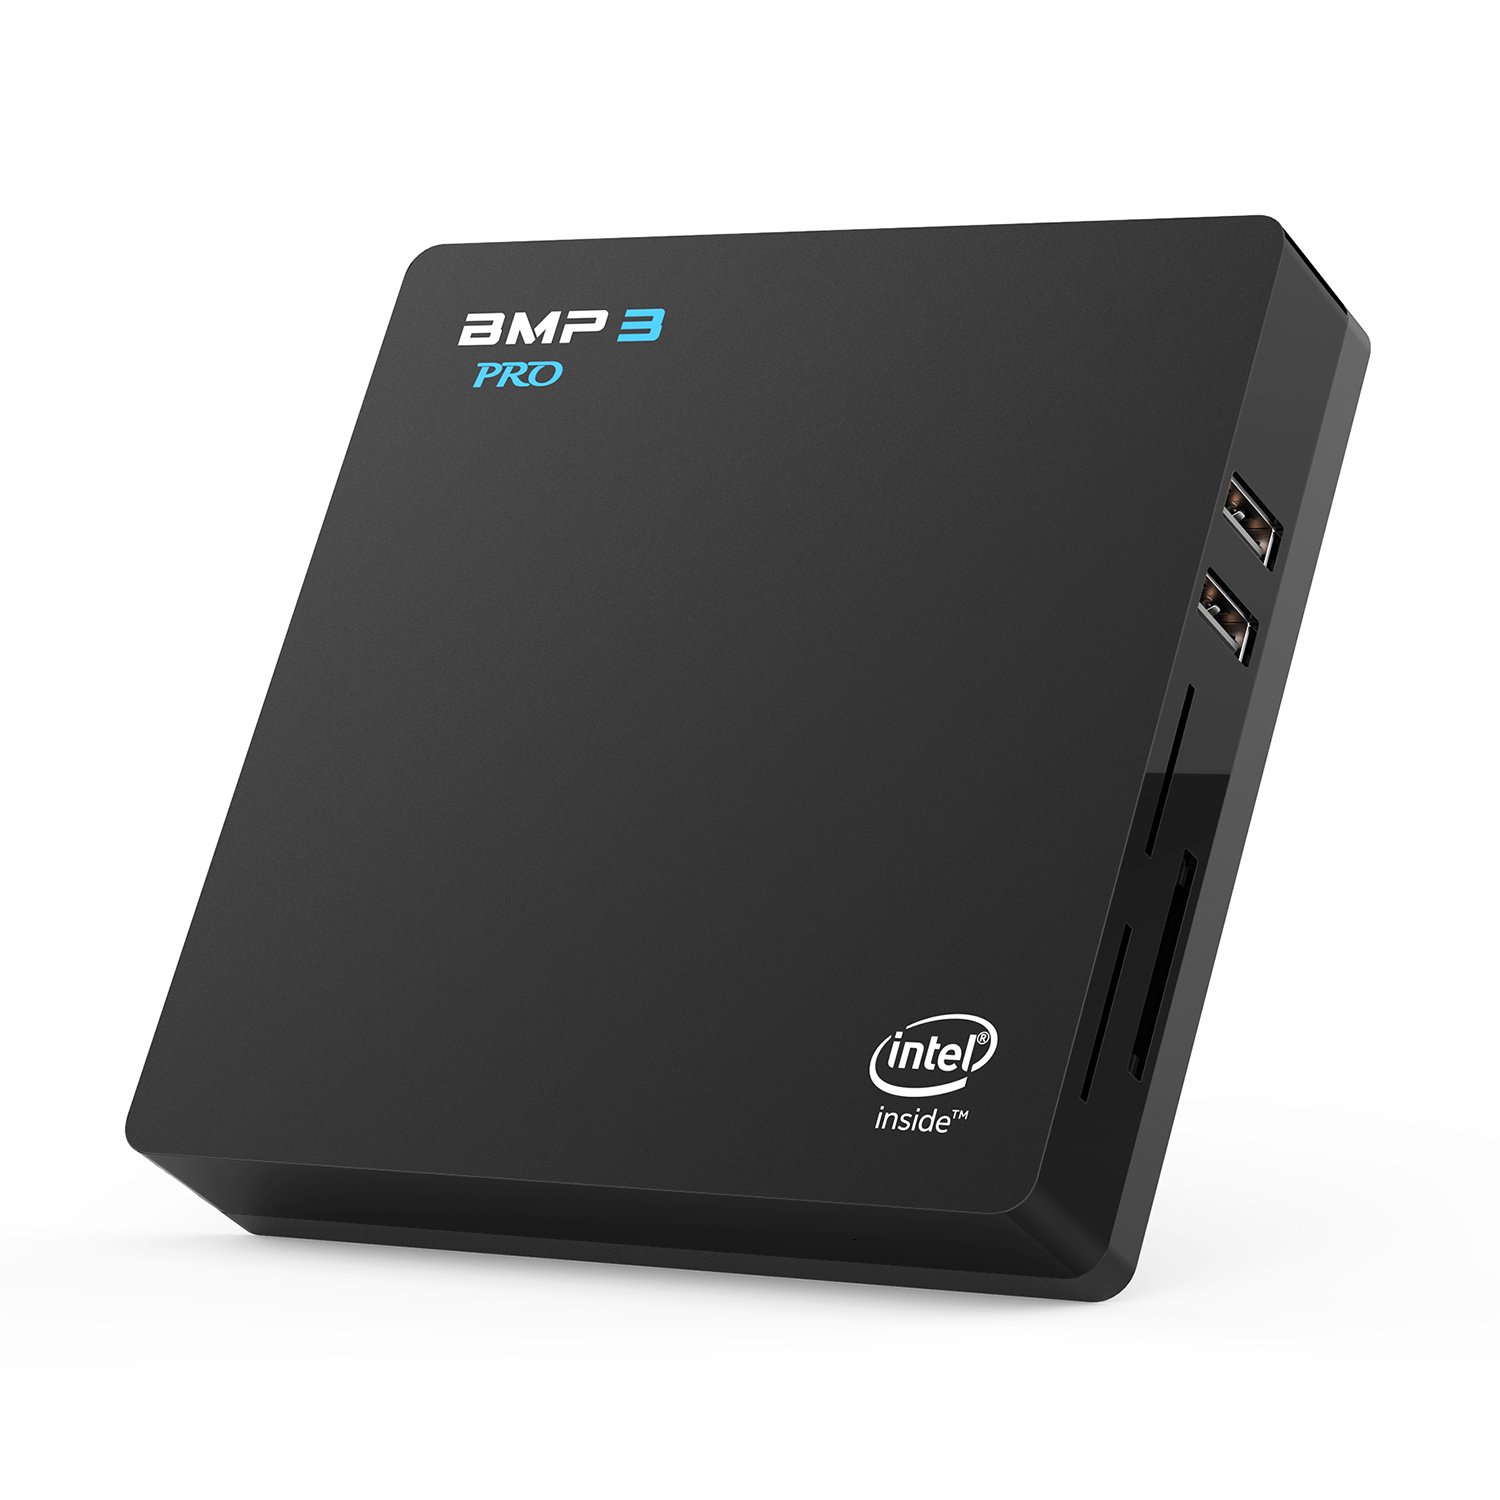 TALLA 4+32G. Bqeel BMP3 Pro Mini PC soporta Windows 10 Home / Procesador Intel Atom x5-Z8350 / 4 GB DDR3 + 32 GB eMMC / Intel HD Graphics / 4K / 1000 Mbps LAN / Dual-Band WiFi con Bluetooth 4.0 / USB 3.0 / USB 2.0